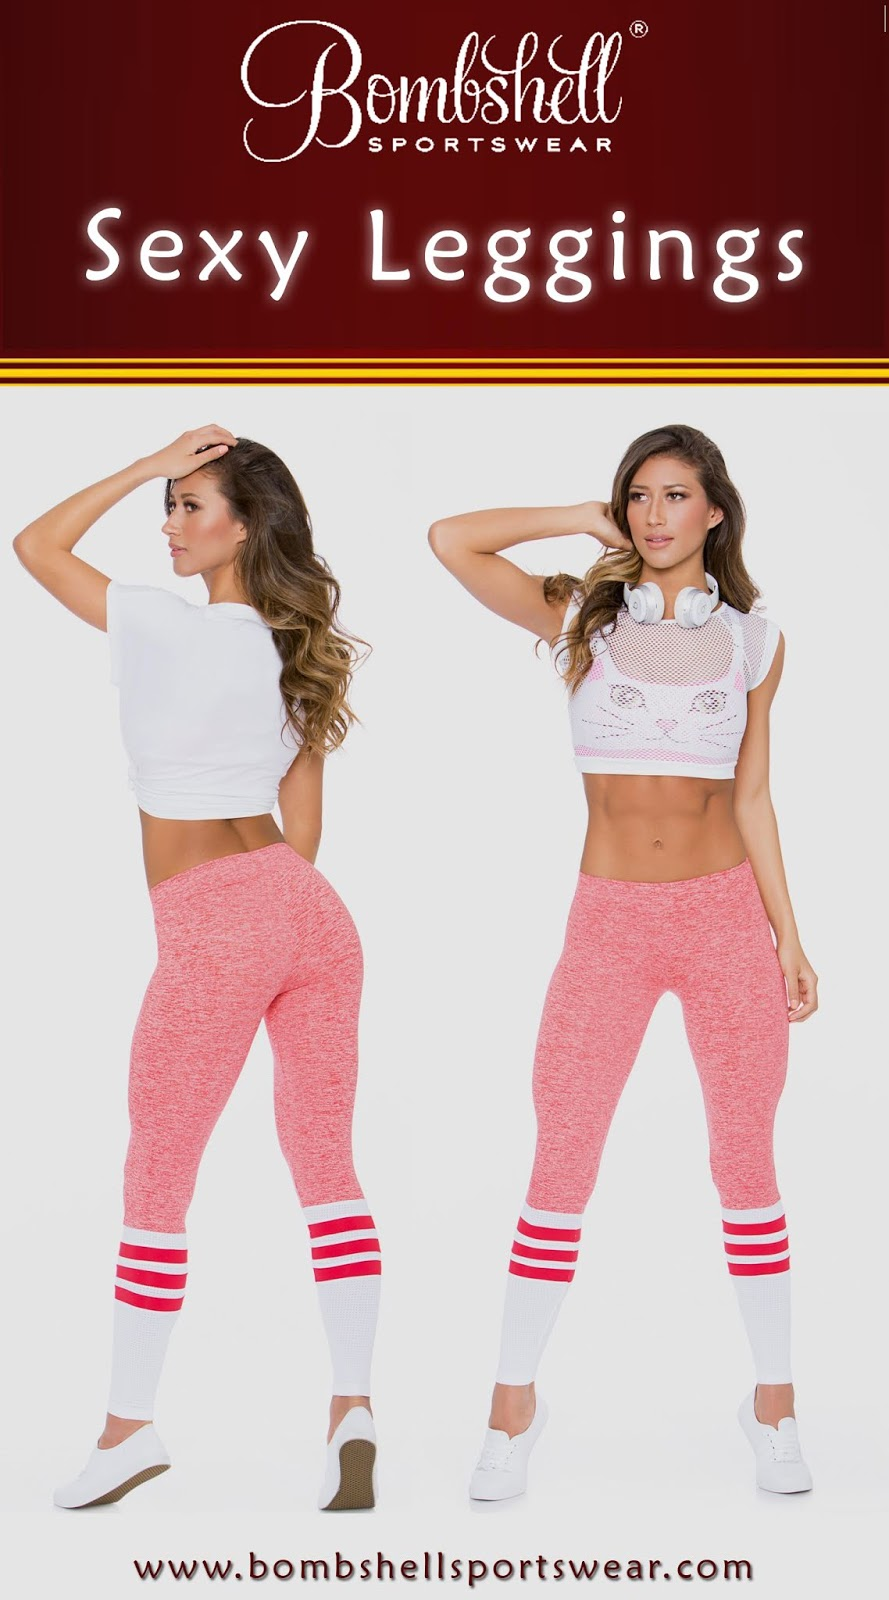 1356b5a278d2e Buy low price, high-quality Sexy Leggings from Bombshell Sportswear in the  USA. Girls always want to look sexy among their friends.